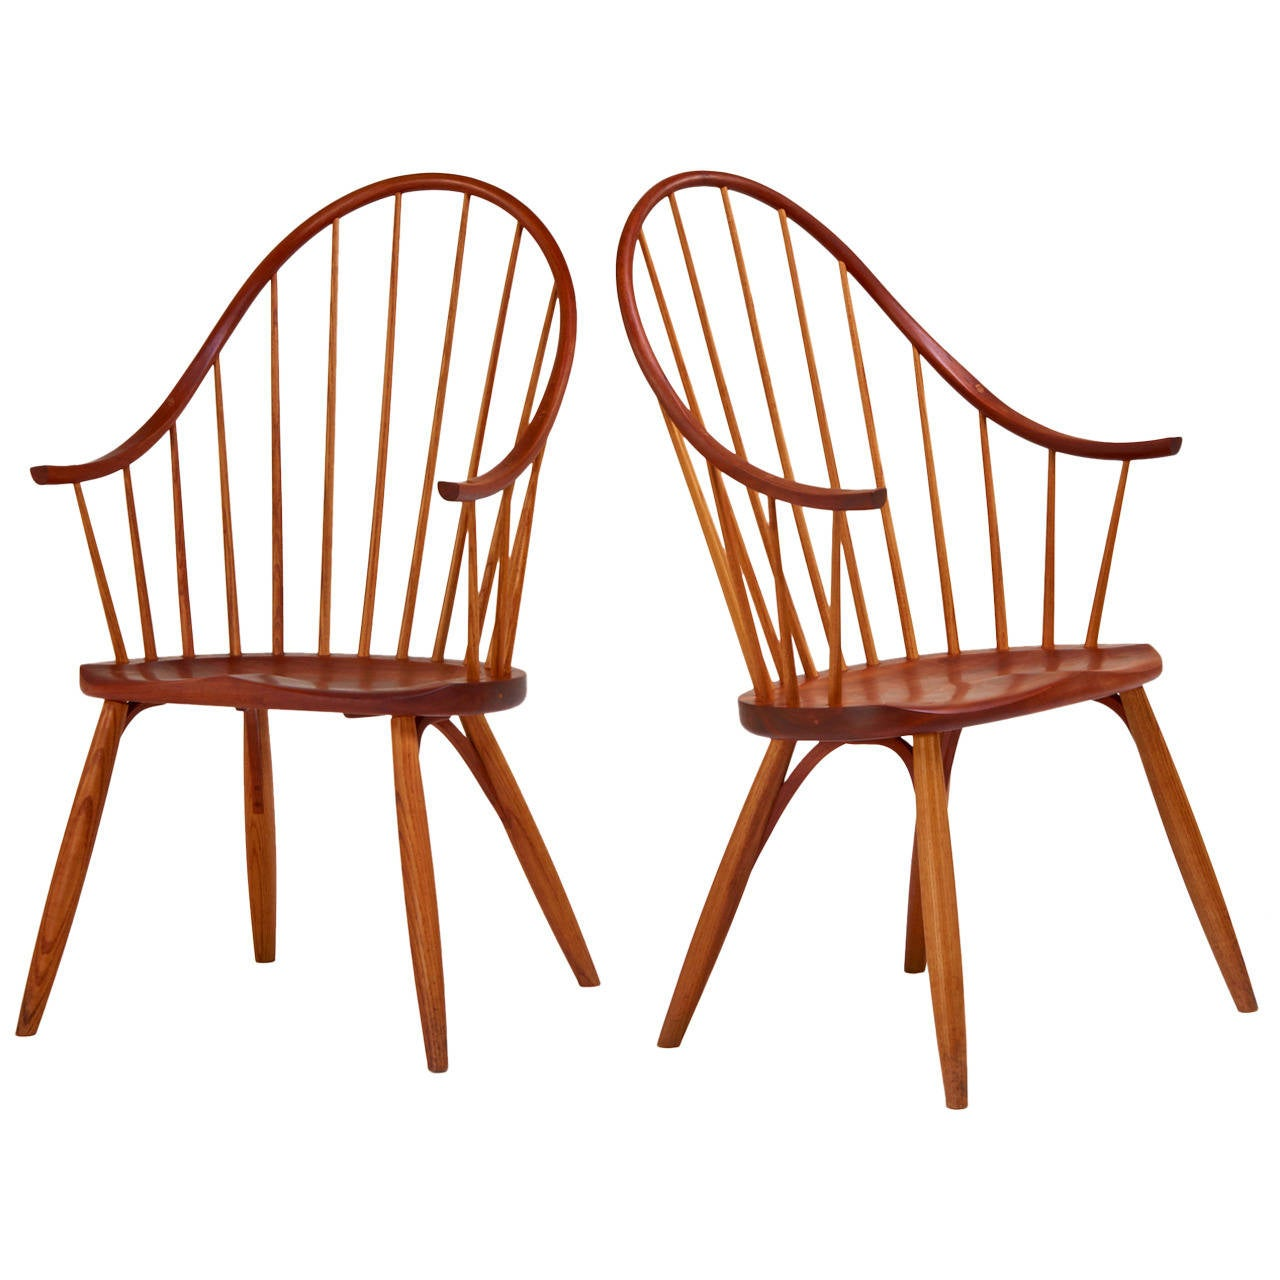 Pair Of Early Continuous Armchairs By Thomas Moser At 1stdibs